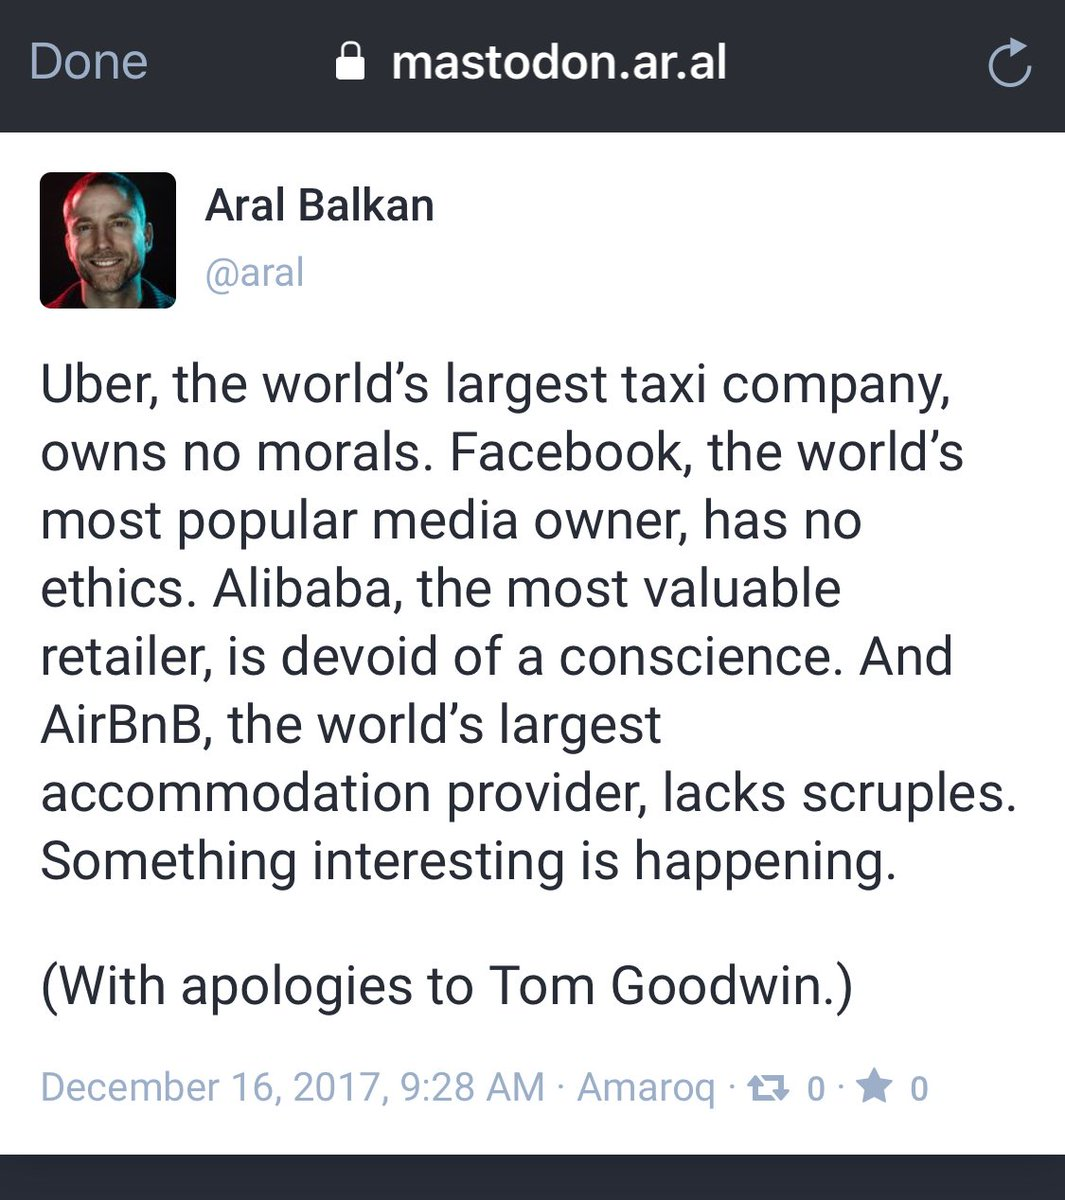 Uber, the world's largest taxi company, owns no morals. Facebook, the world's most popular media owner, has no ethics. Alibaba, the most valuable retailer, is devoid of a conscience…  https://t.co/QEskD7CMos  (With apologies to @tomfgoodwin)